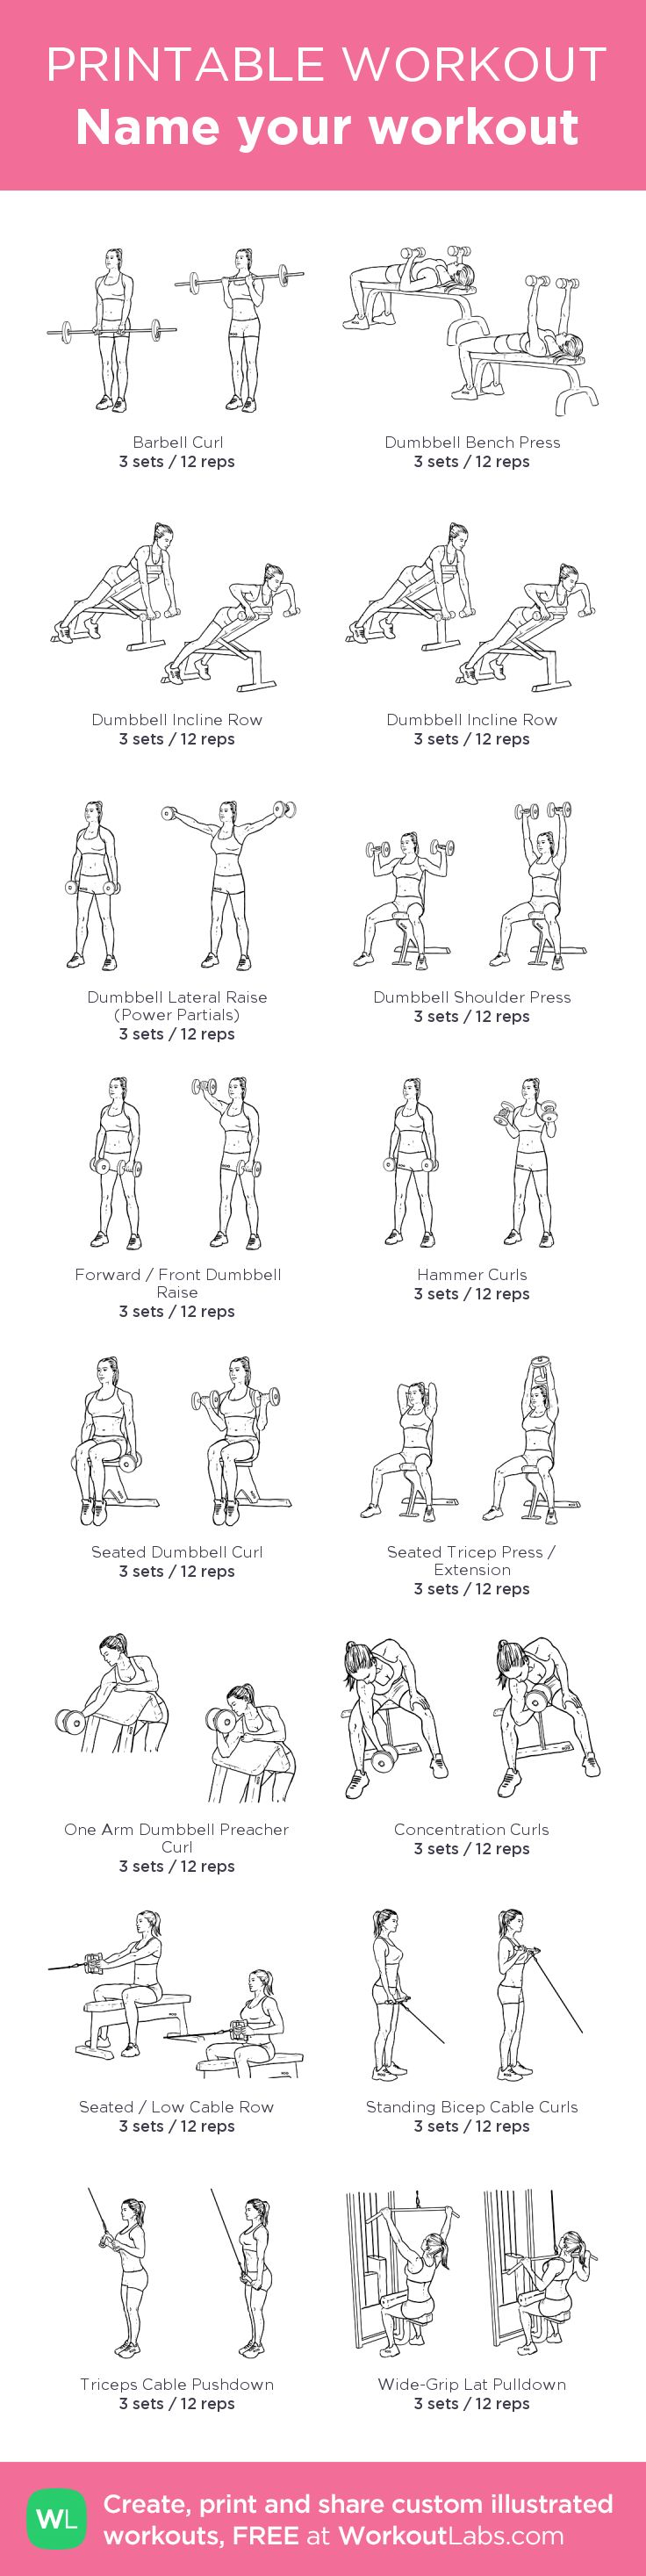 Upper Body:my custom printable workout by @WorkoutLabs #workoutlabs #customworkout